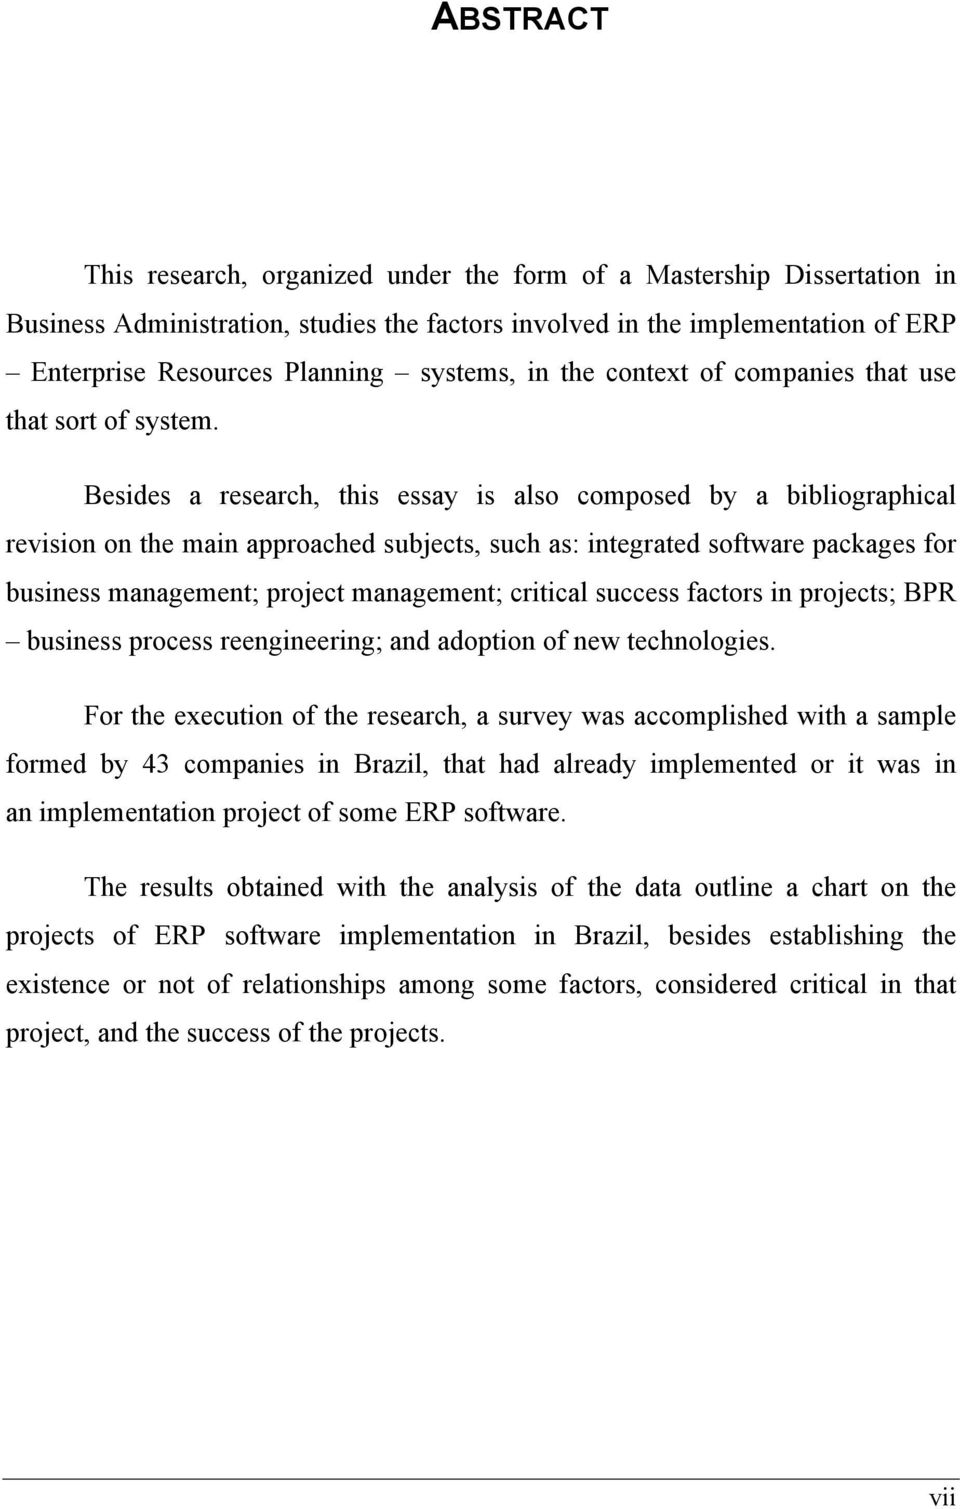 Besides a research, this essay is also composed by a bibliographical revision on the main approached subjects, such as: integrated software packages for business management; project management;